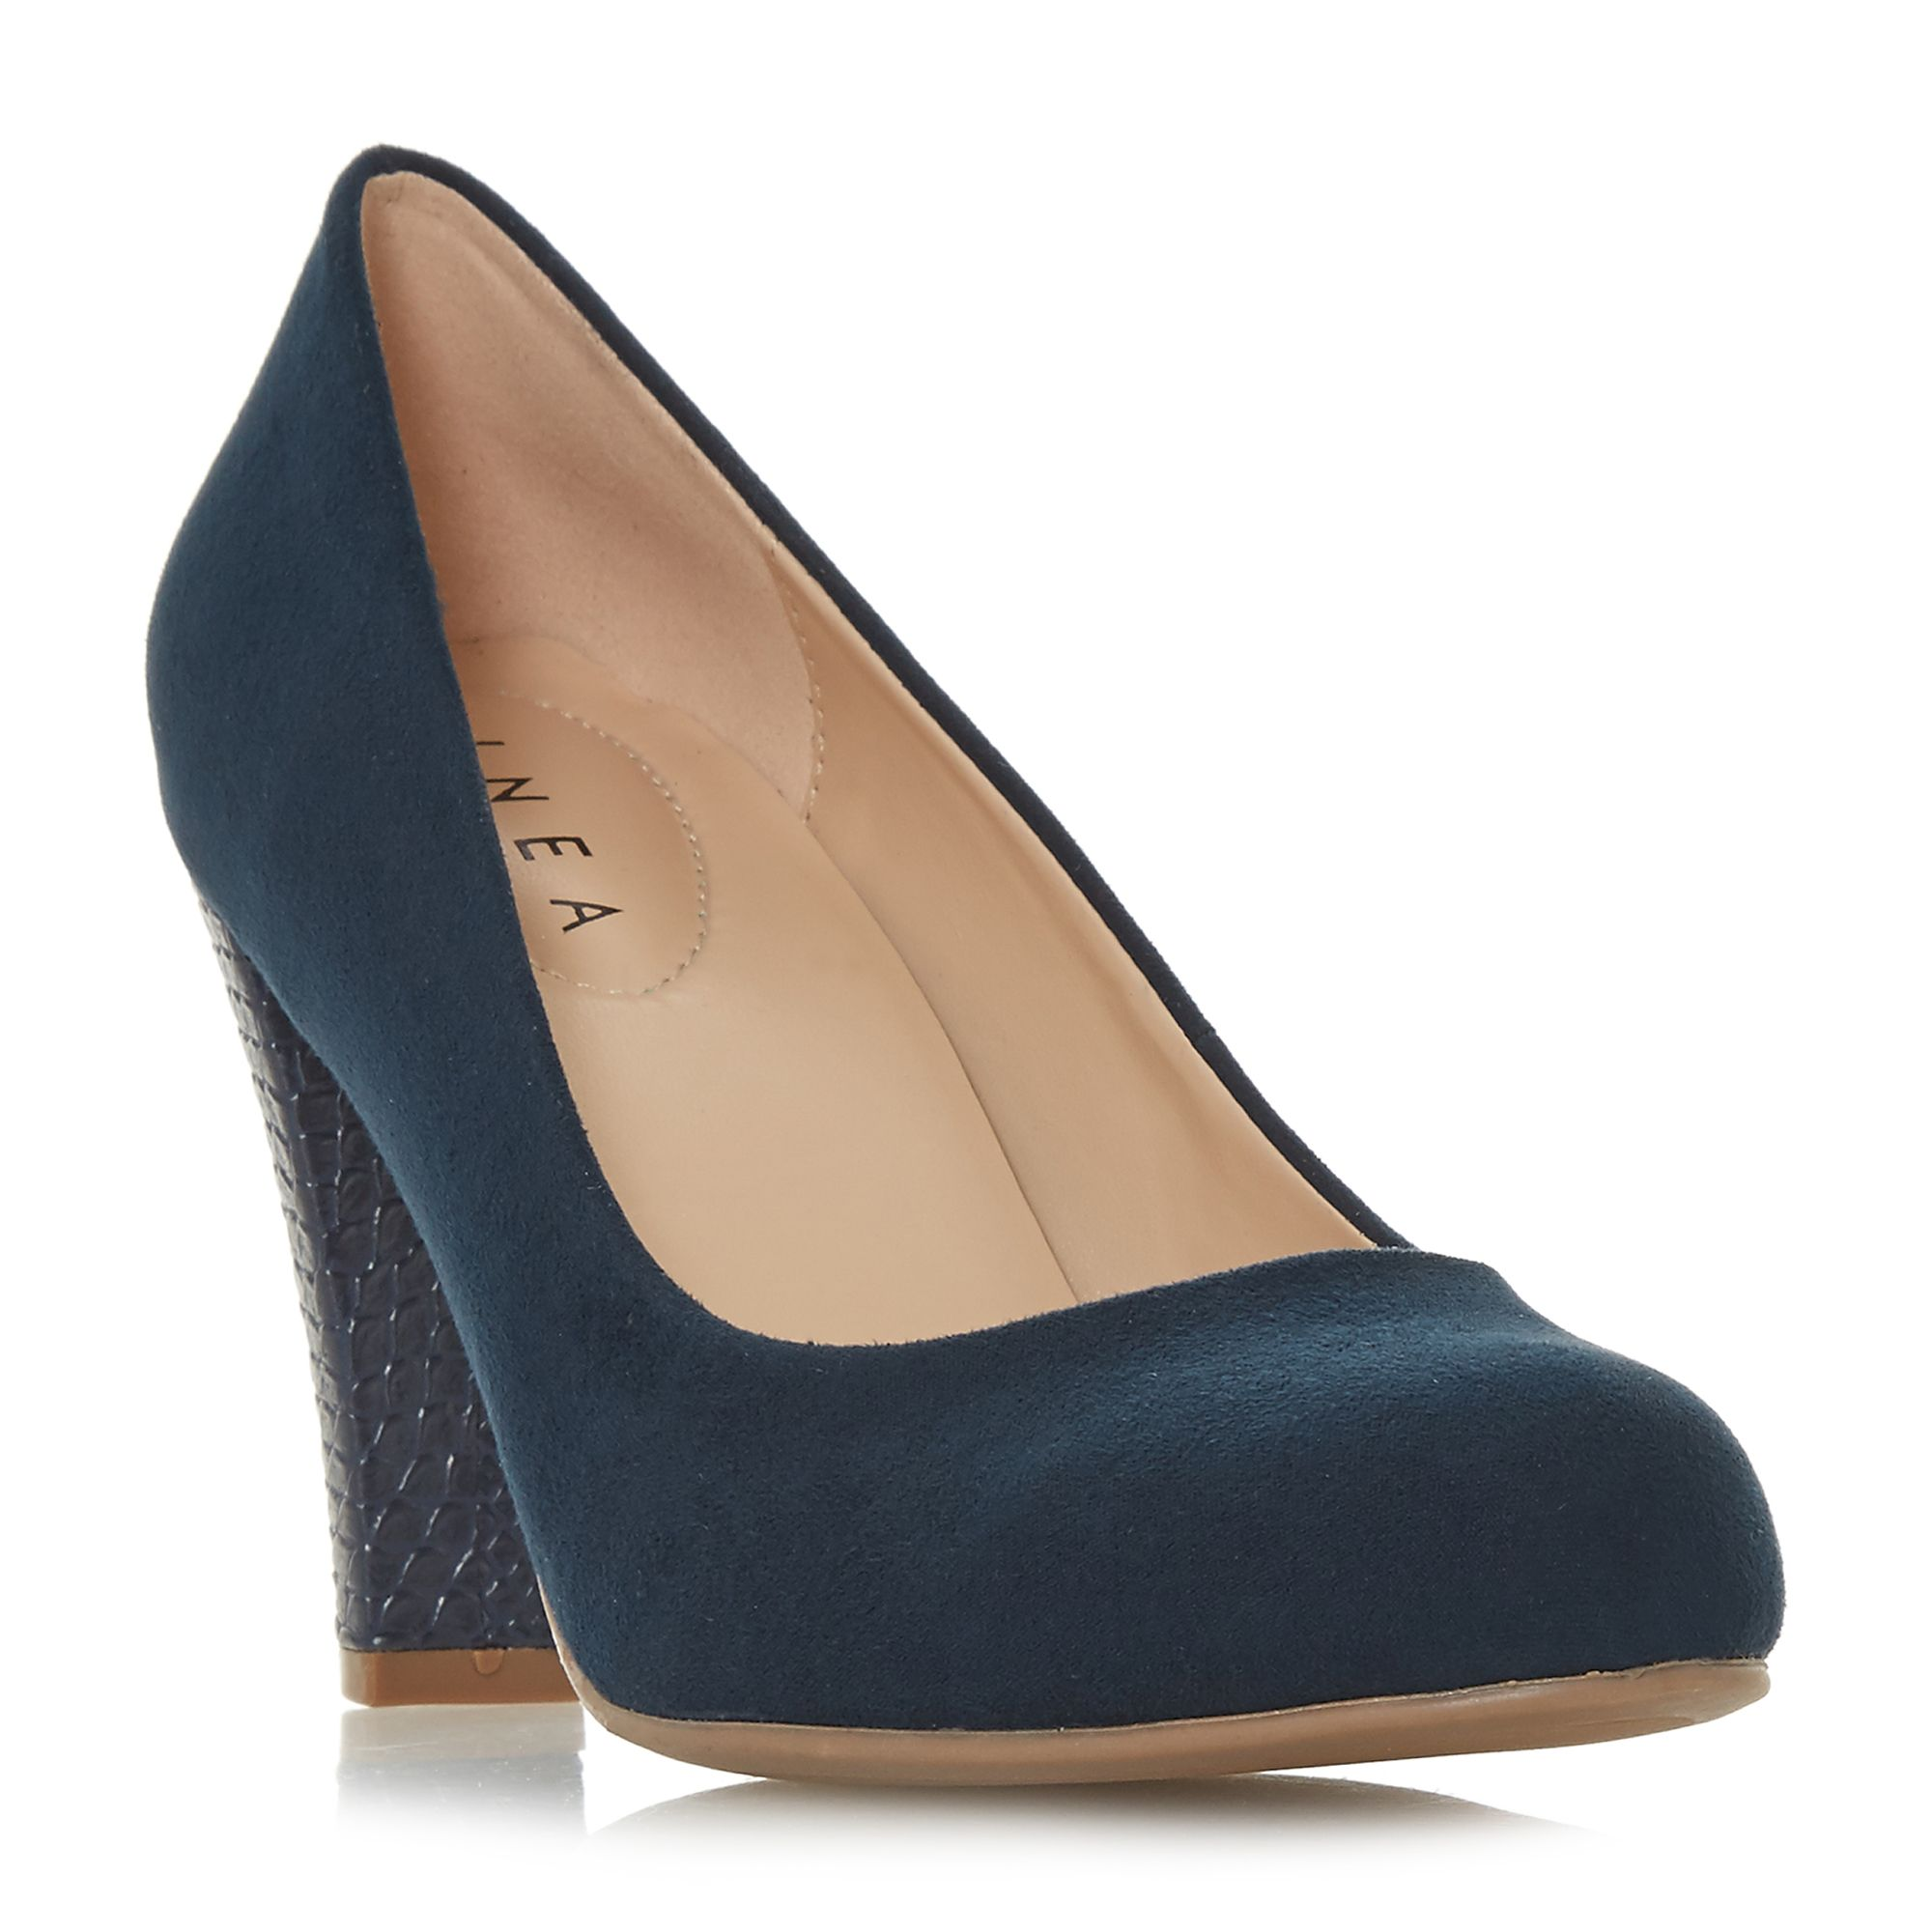 Linea Alianna Comfort Court Shoes, Blue